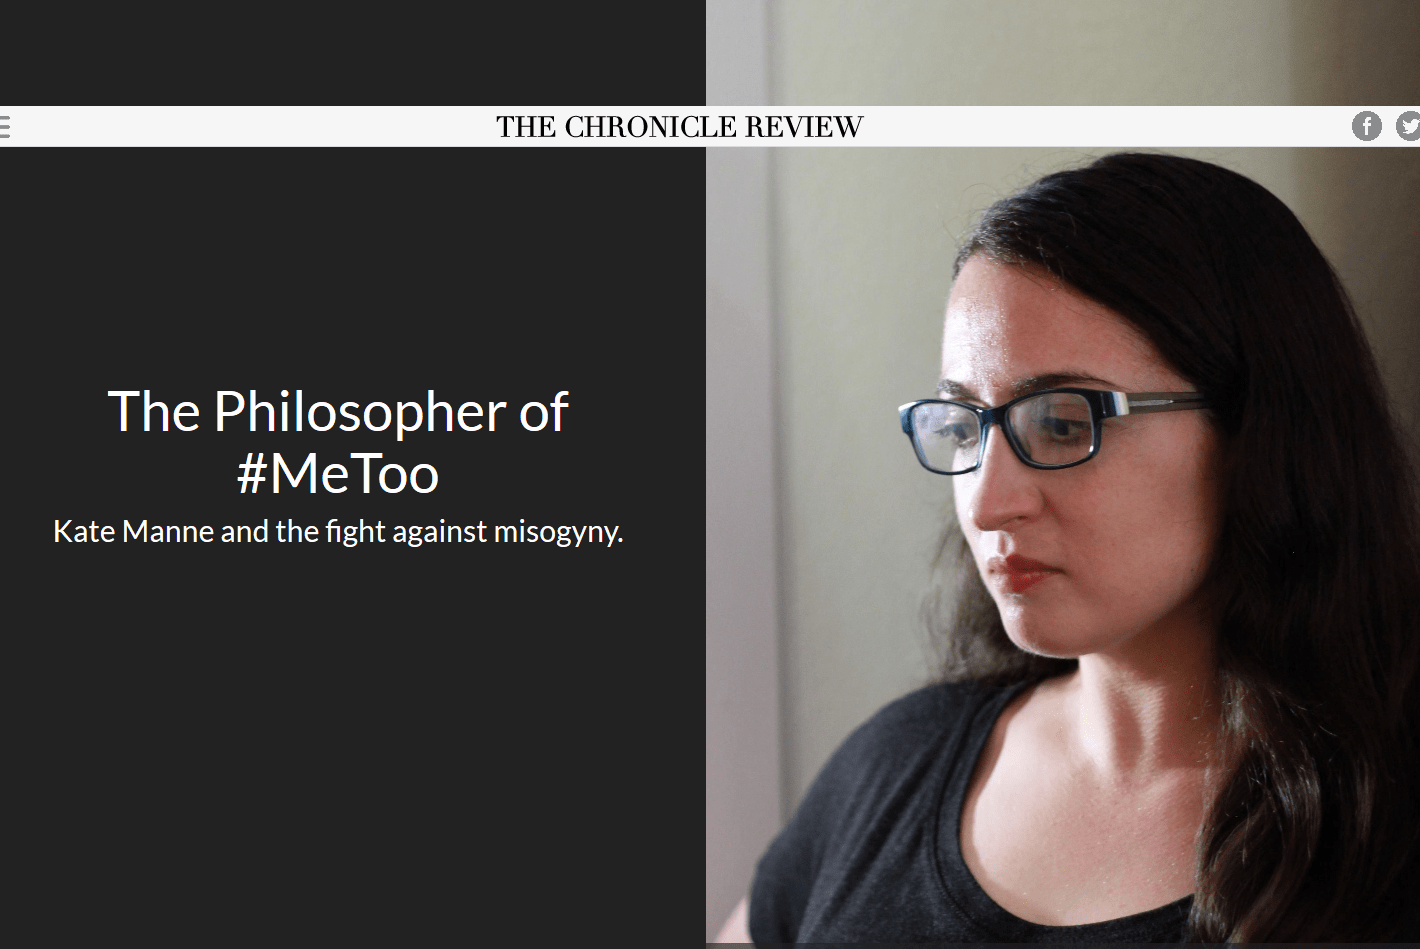 The Philosopher of #MeToo - Prof. Kate Manne